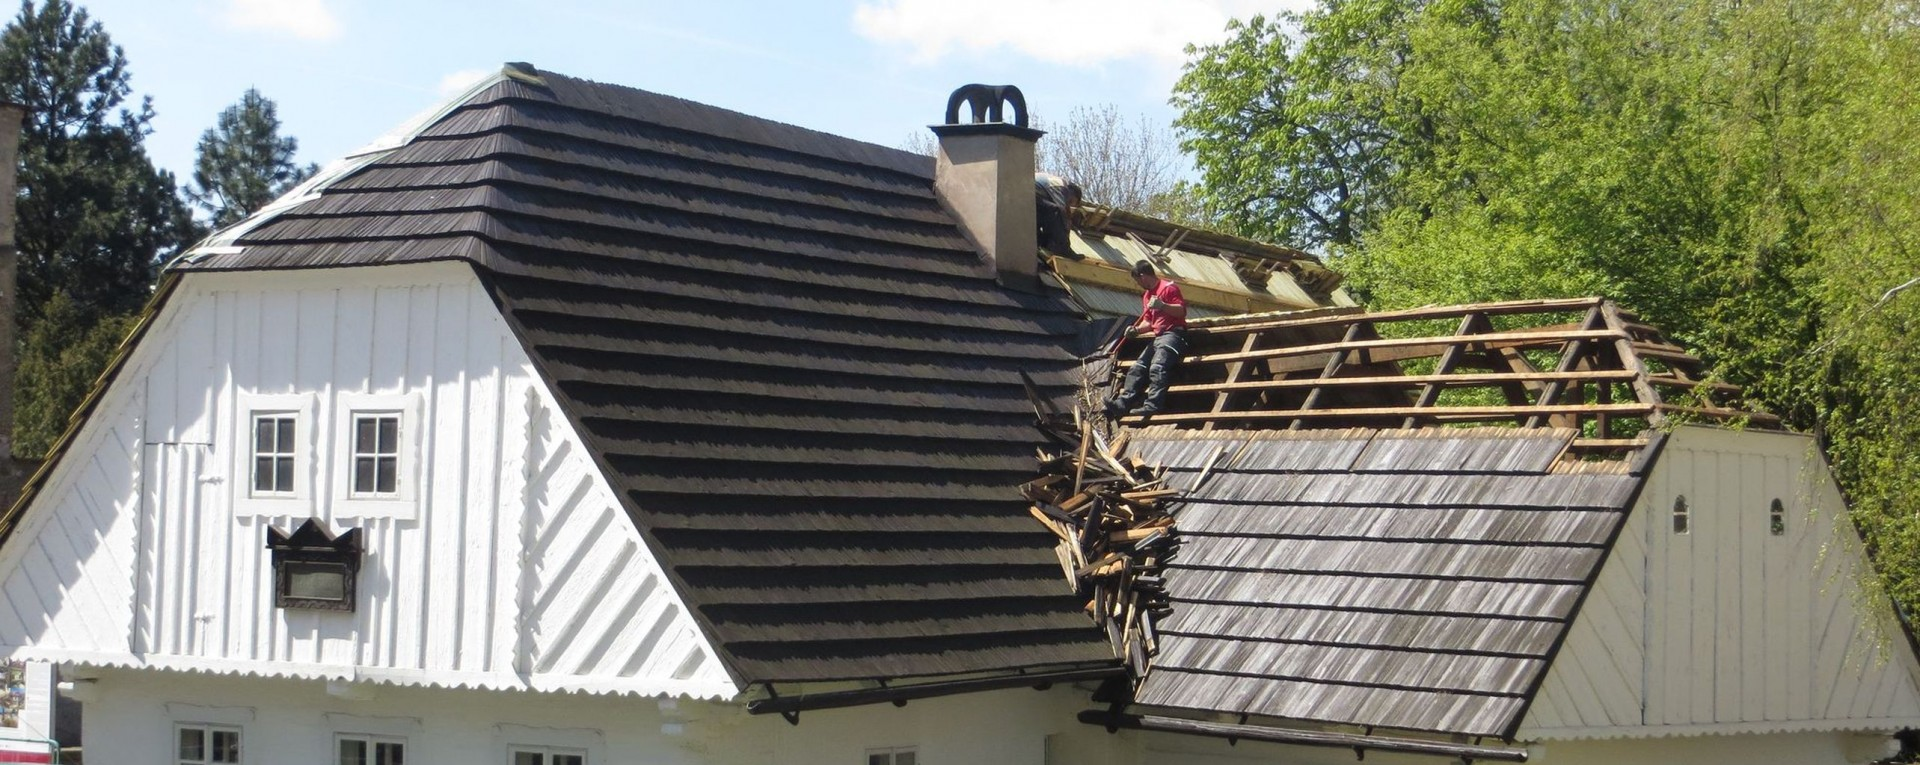 roof repair near Forney